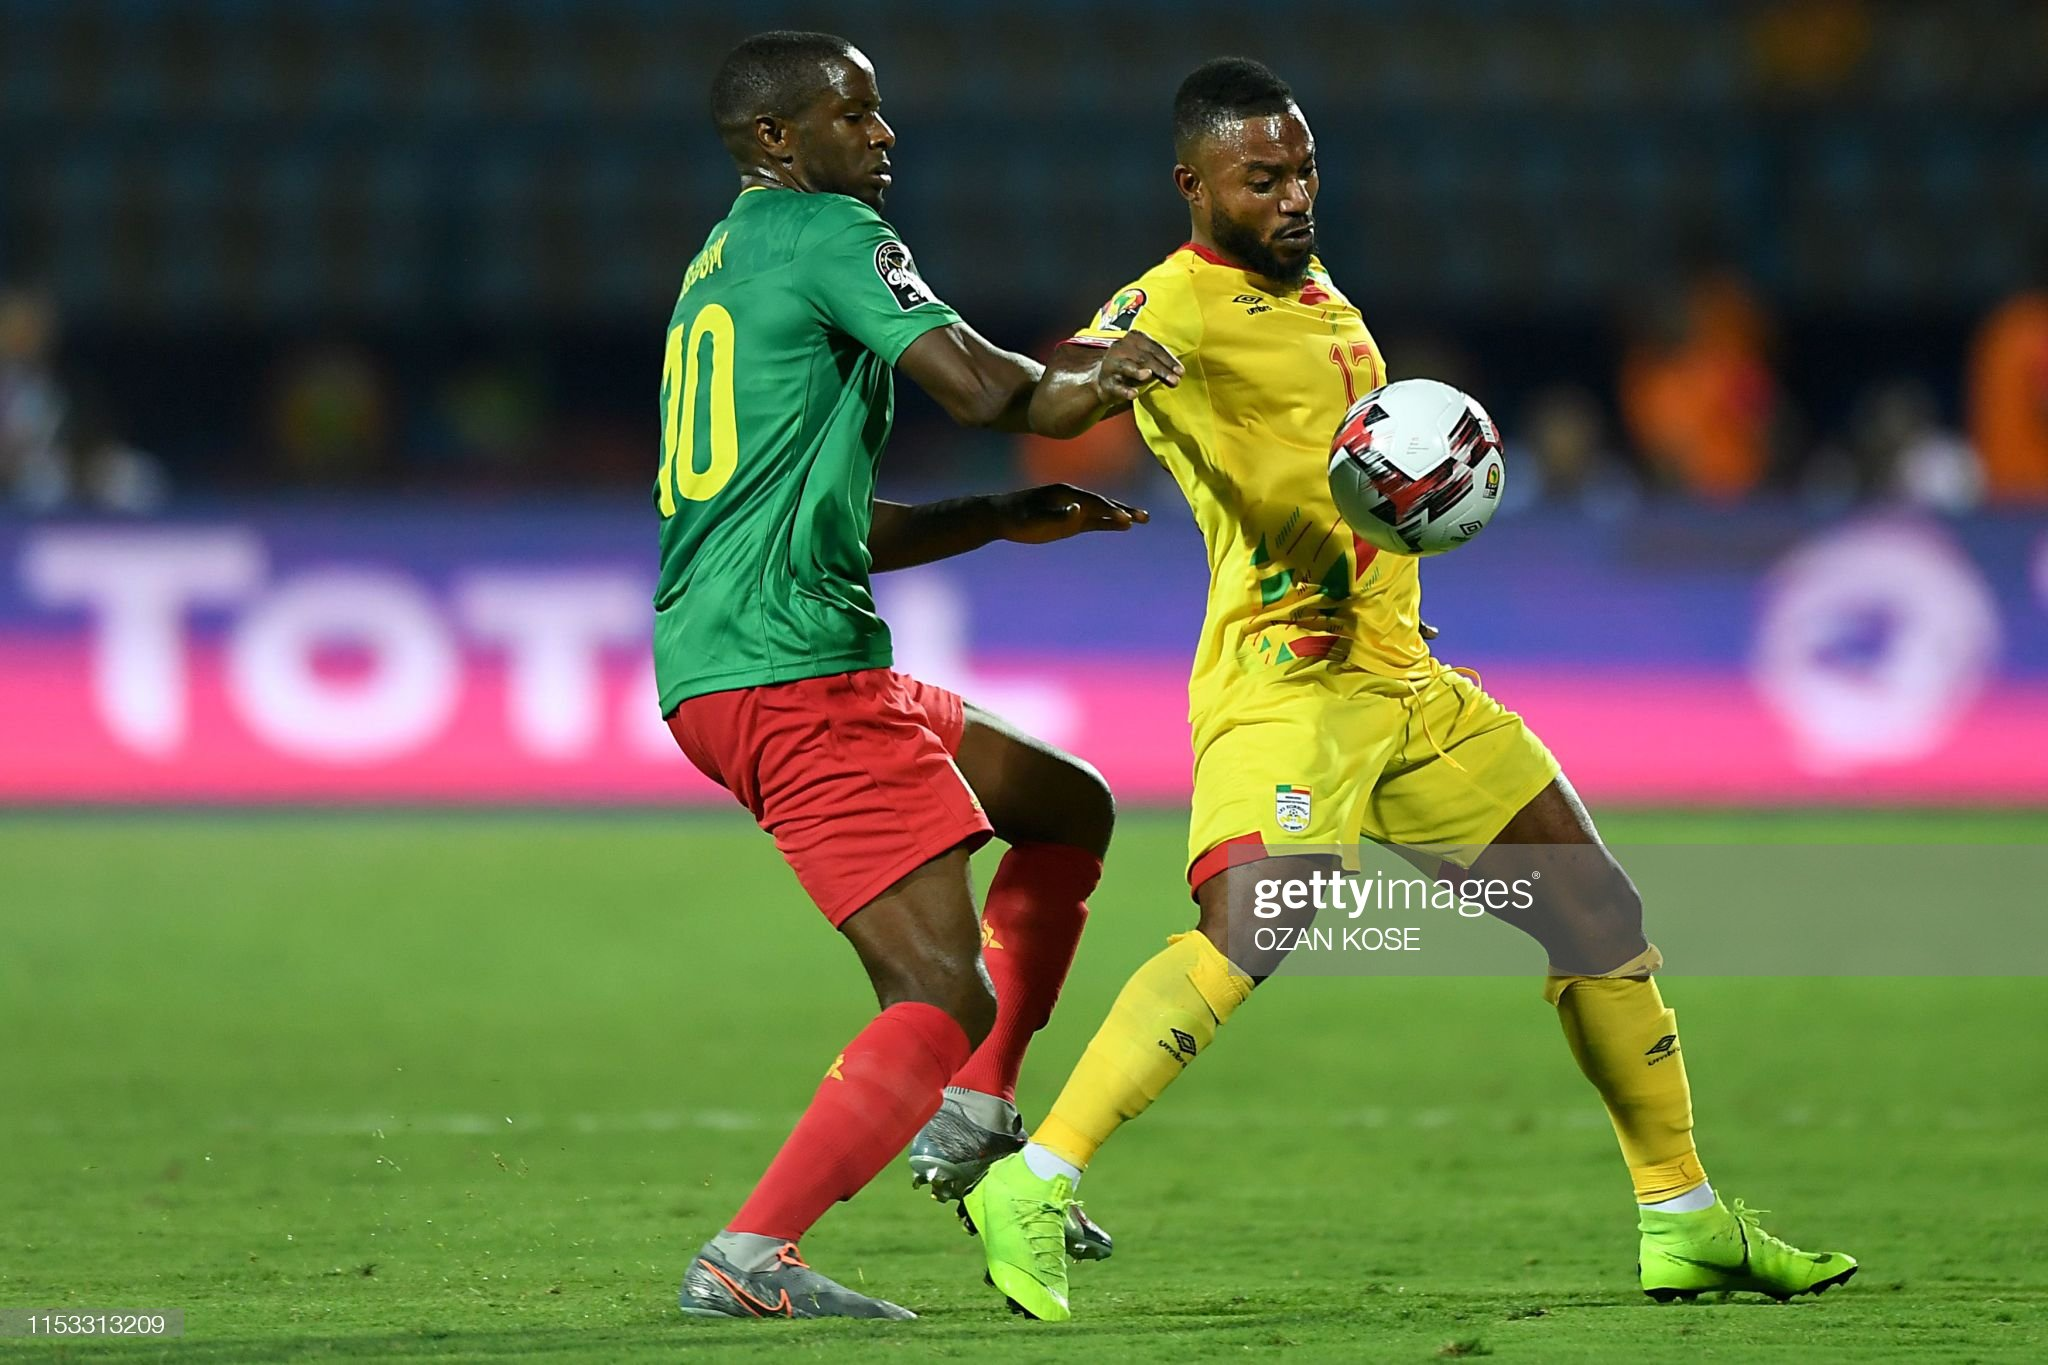 FBL-AFR-2019-MATCH35-BEN-CMR : Photo d'actualité